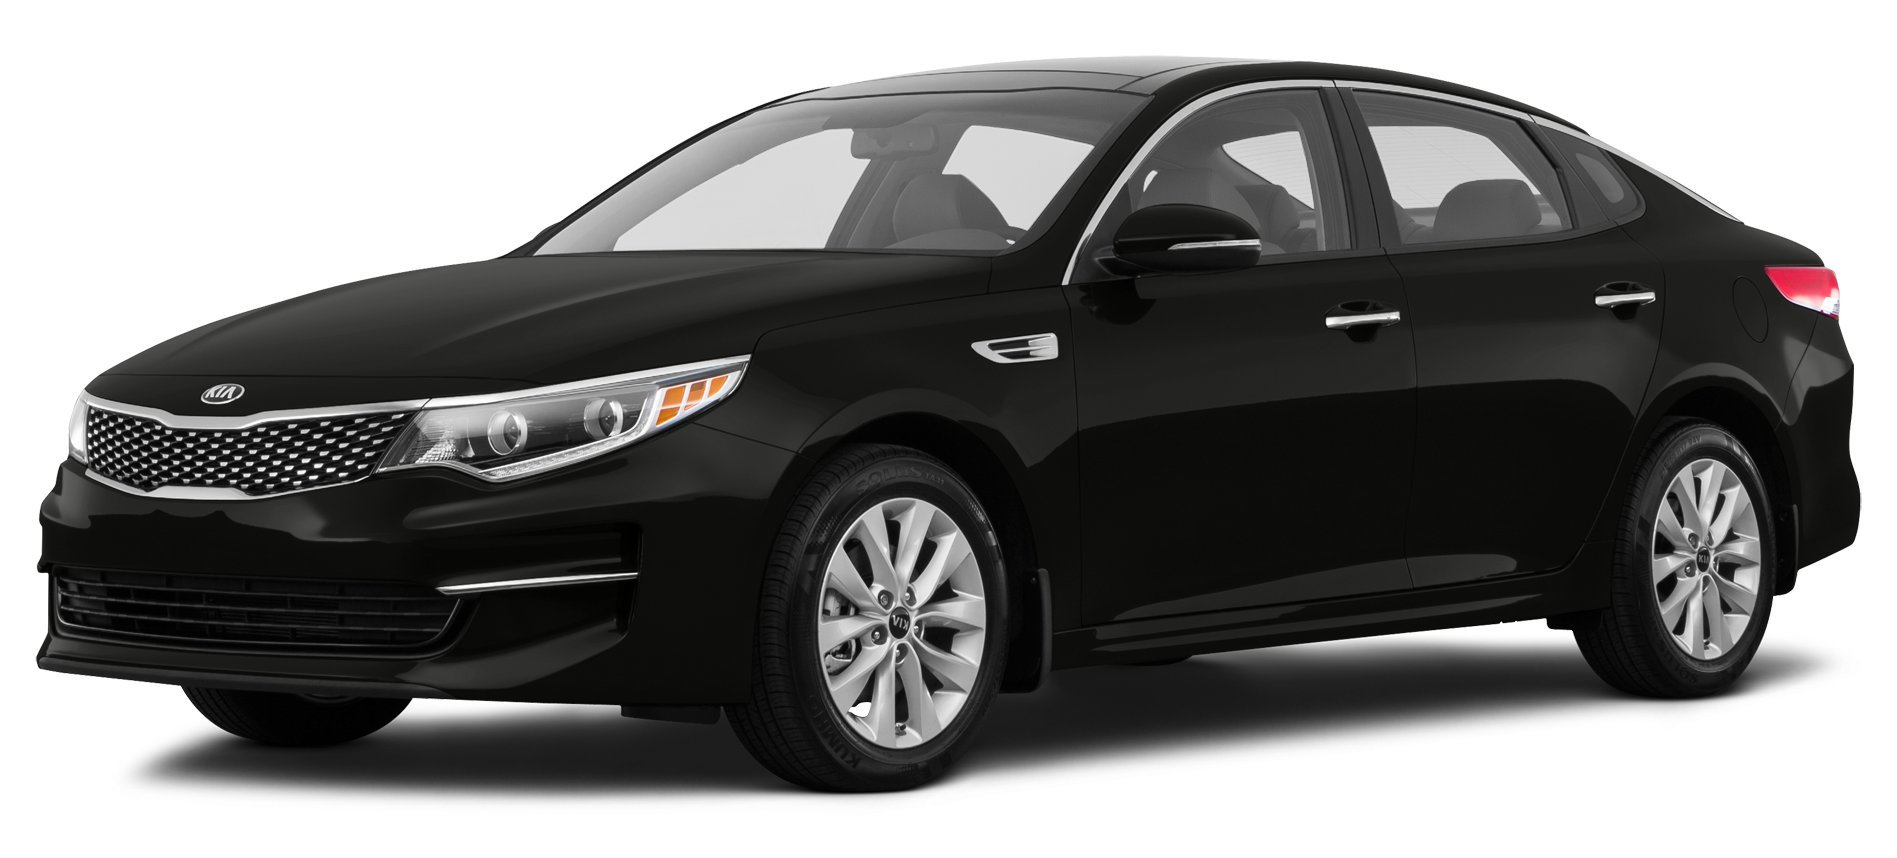 2016 kia optima reviews images and specs vehicles. Black Bedroom Furniture Sets. Home Design Ideas